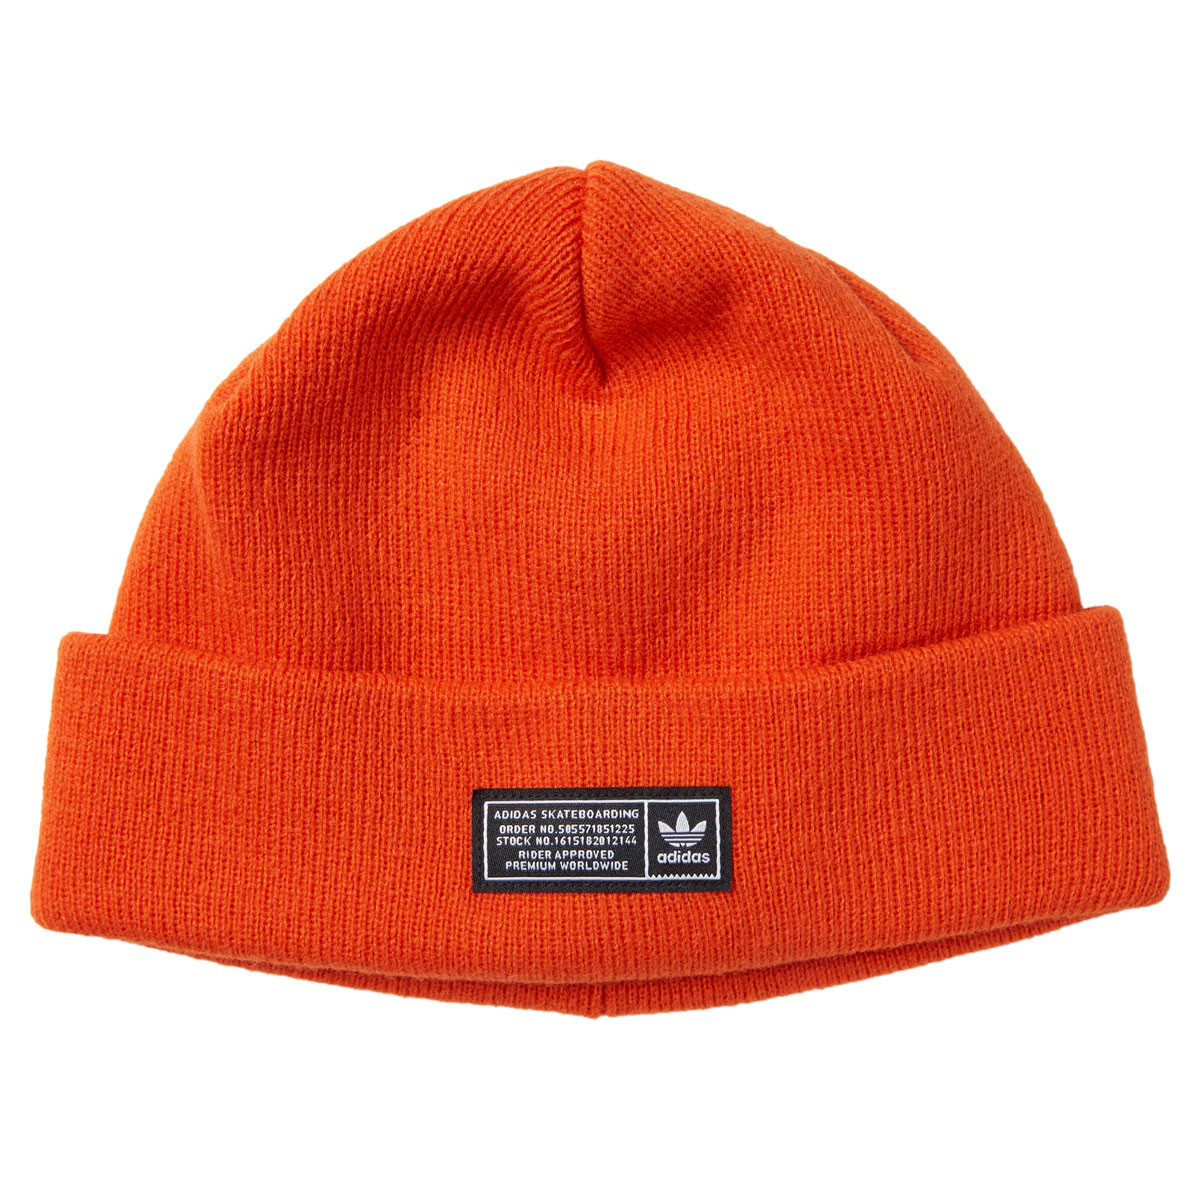 331588d83 Adidas Joe Beanie - Collegiate Orange